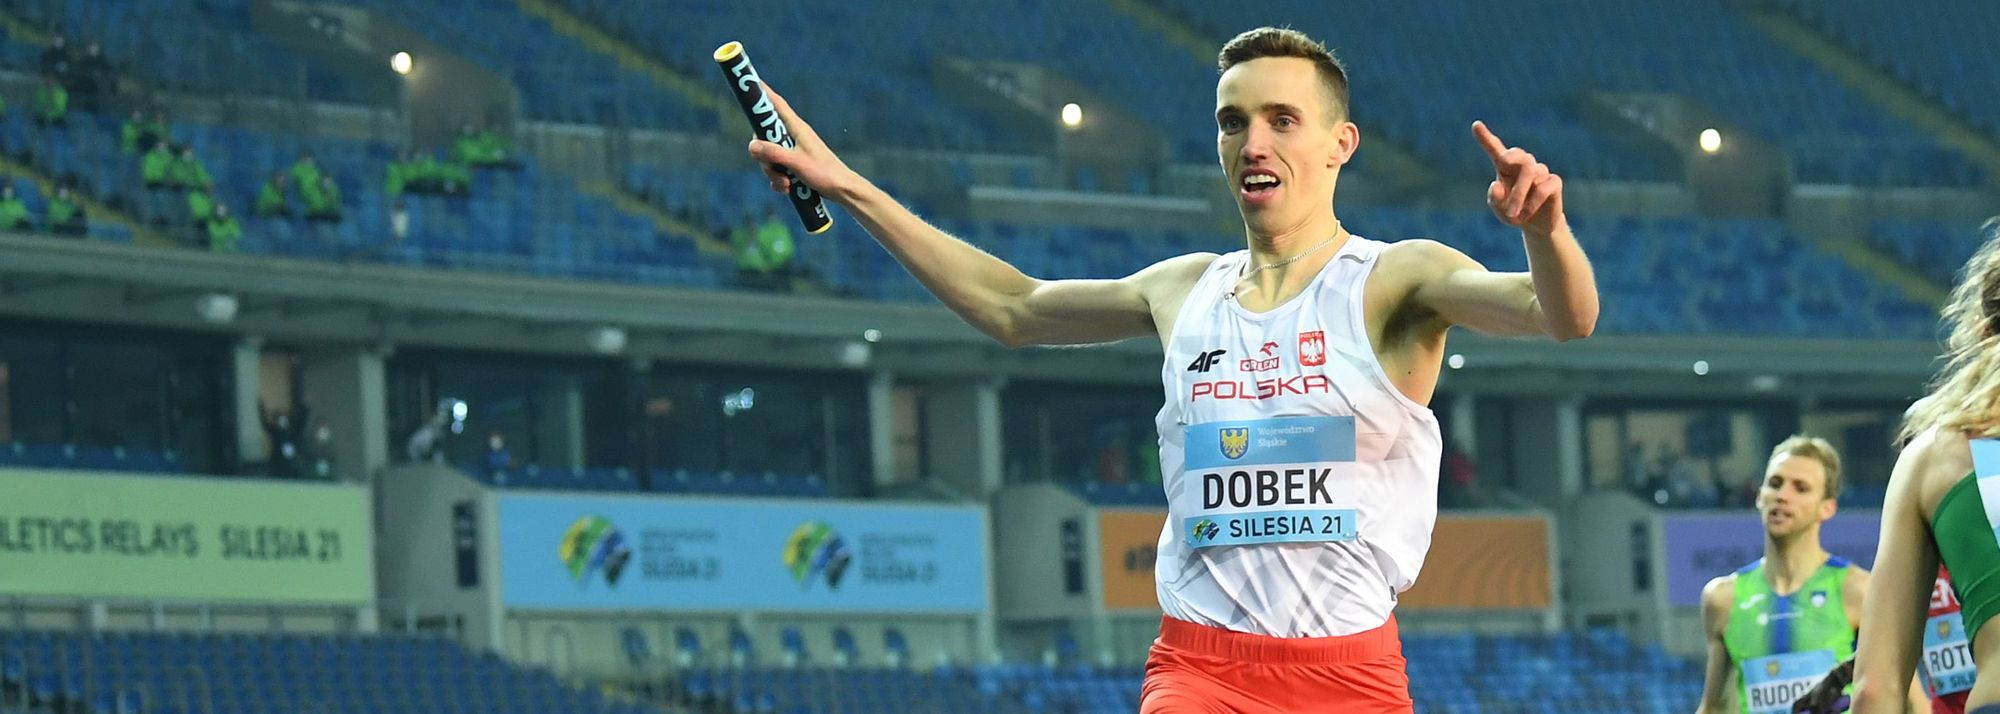 Sprinter or middle-distance runner? It's a question many have asked Poland's Patryk Dobek this year, one he now also has to ask himself.